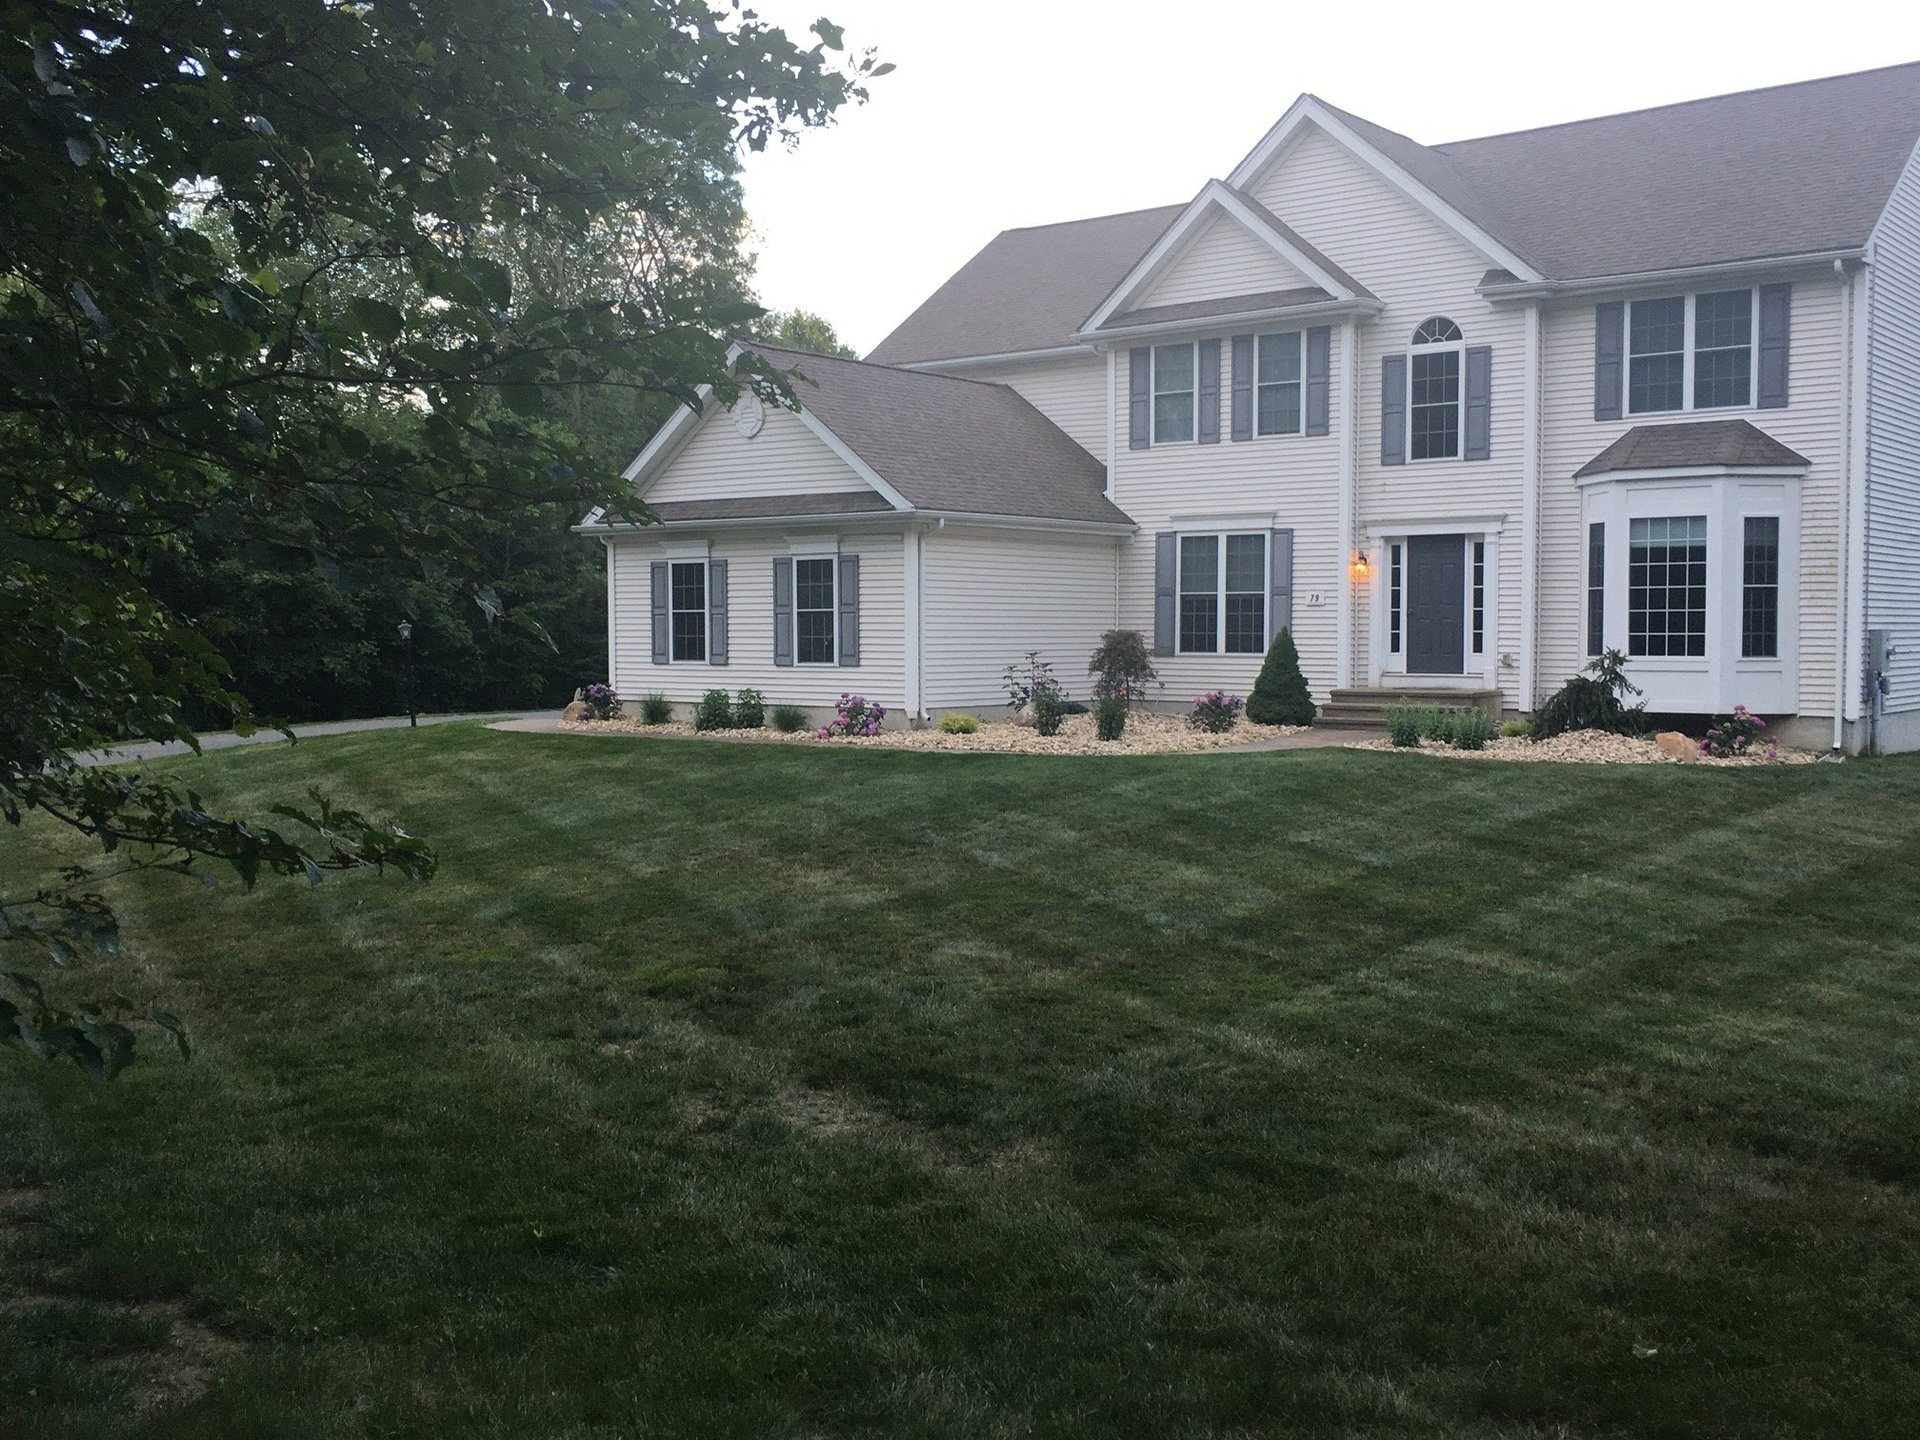 Front Lawn of House